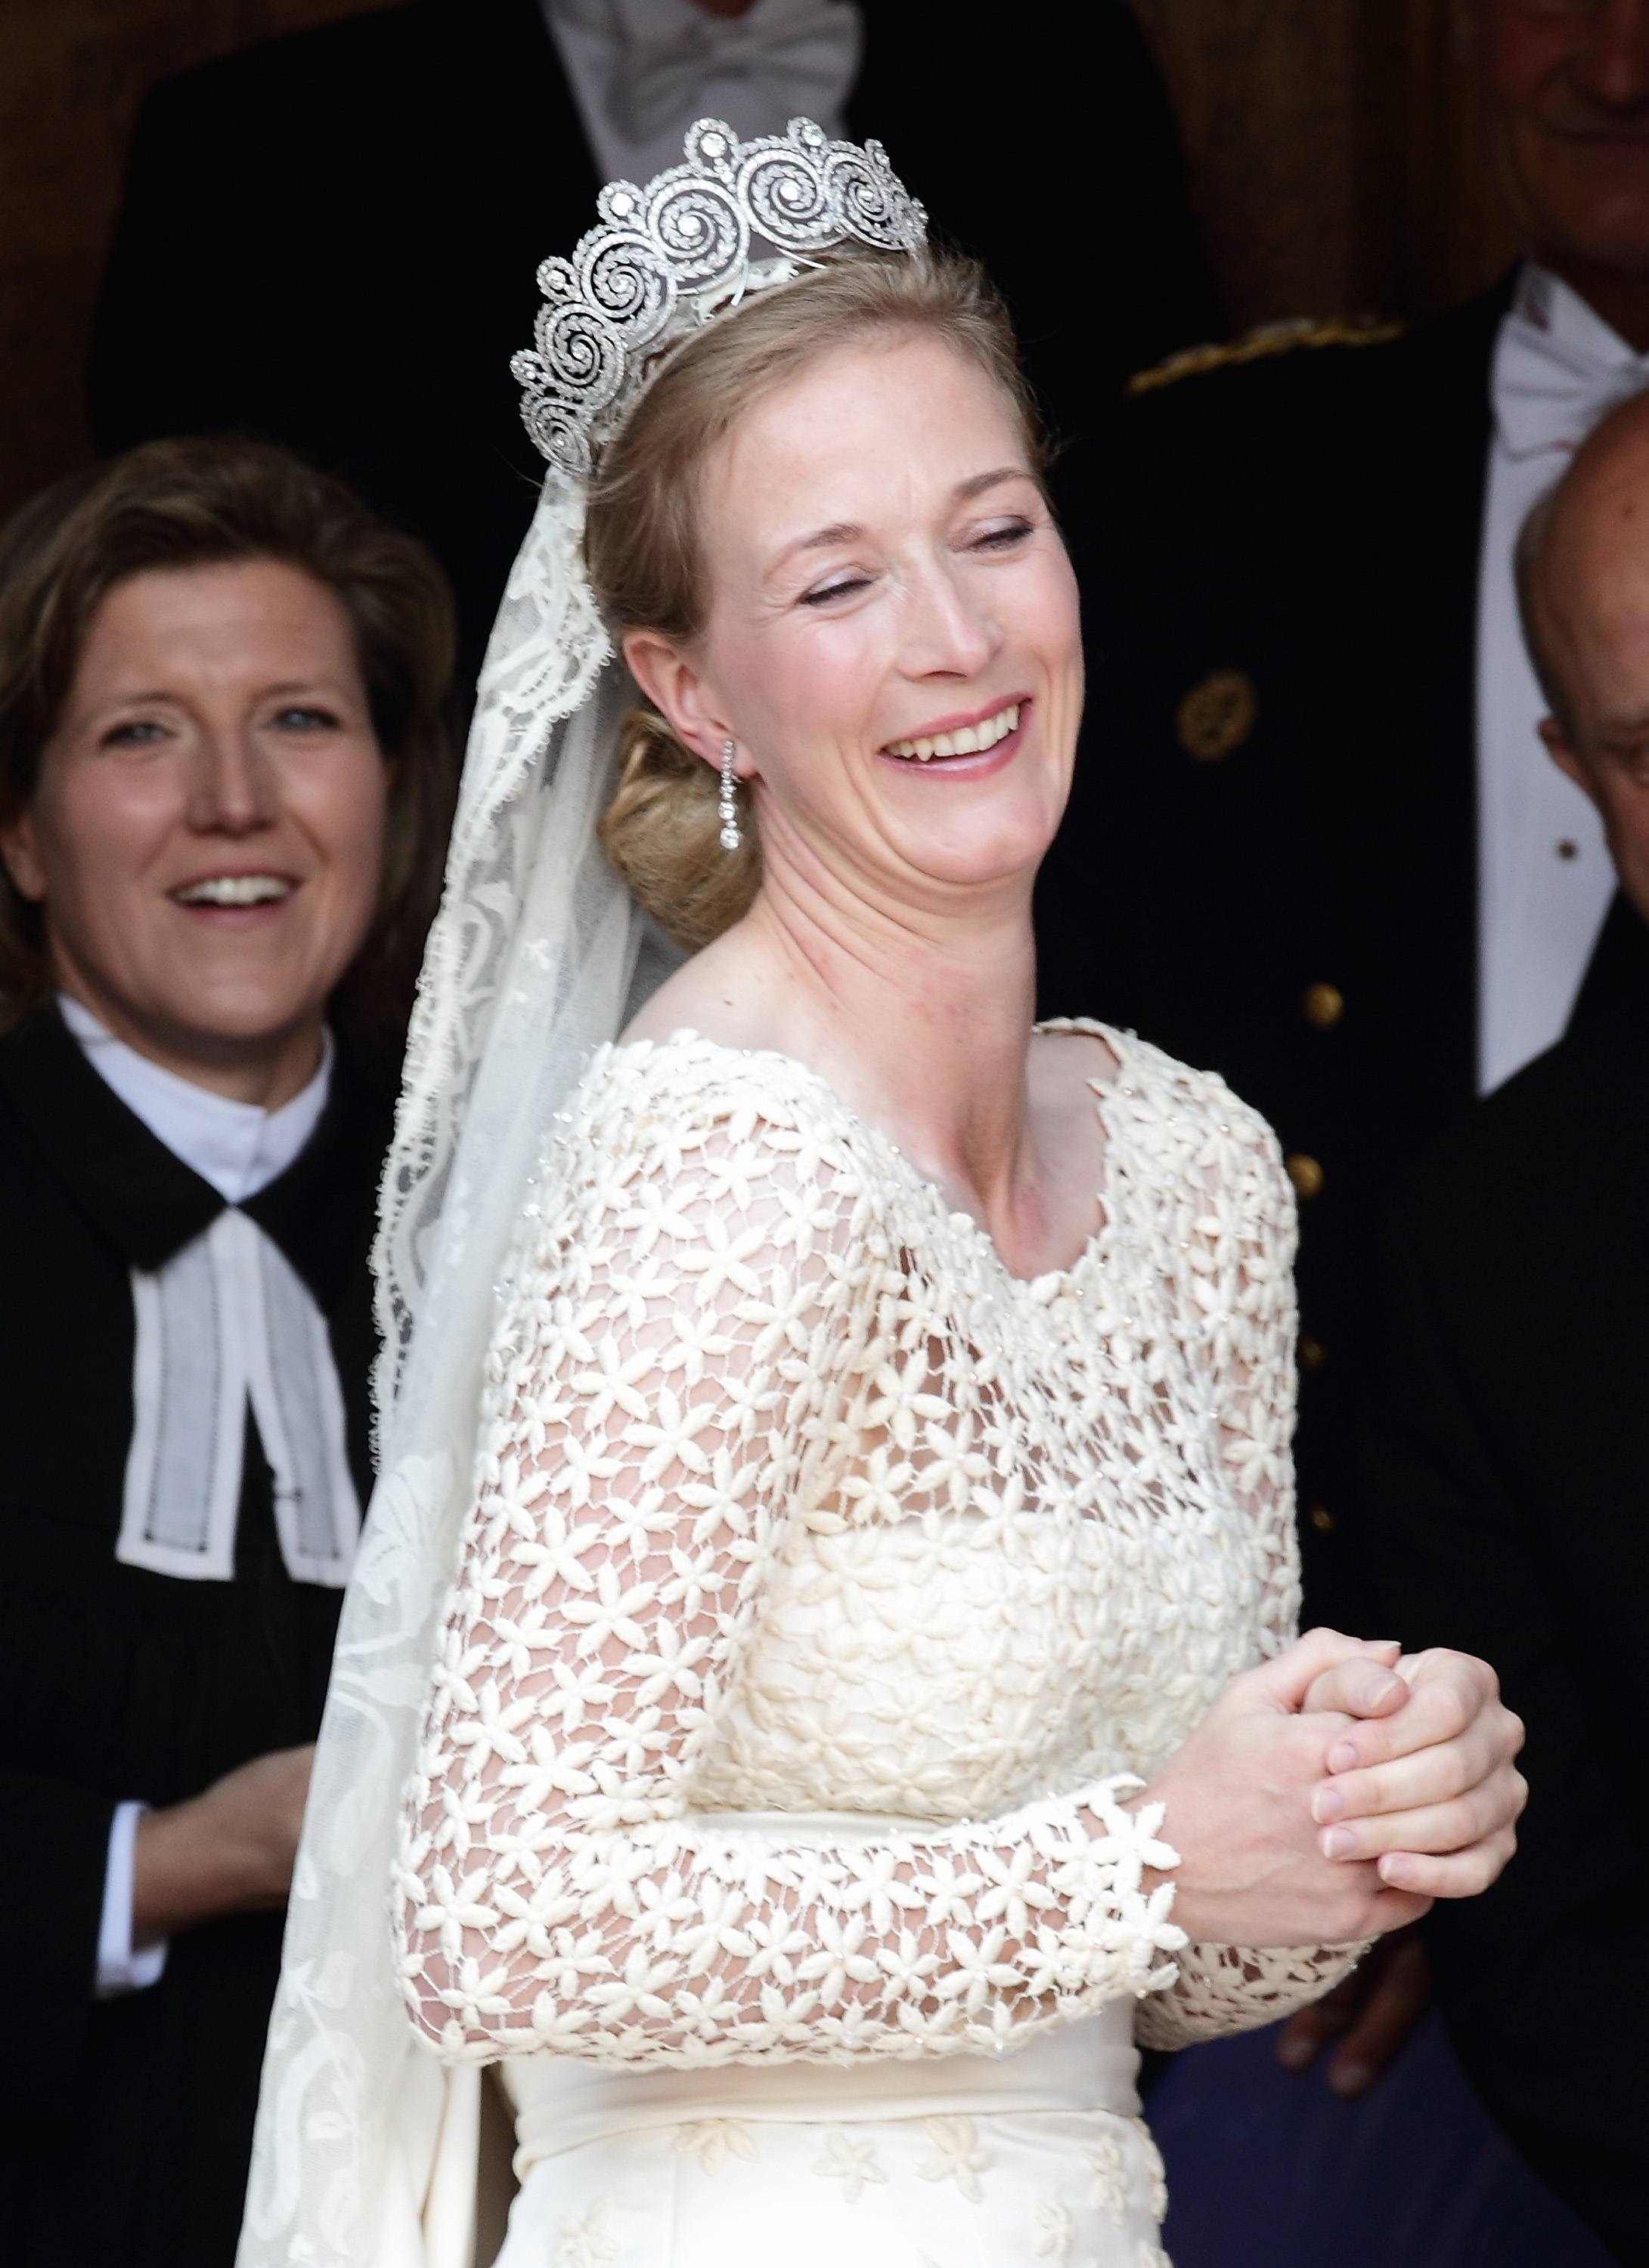 Princess Nathalie Zu Sayn-Wittgenstein-Berleburg Marries Alexander Johannsmann of Denmark Wedding